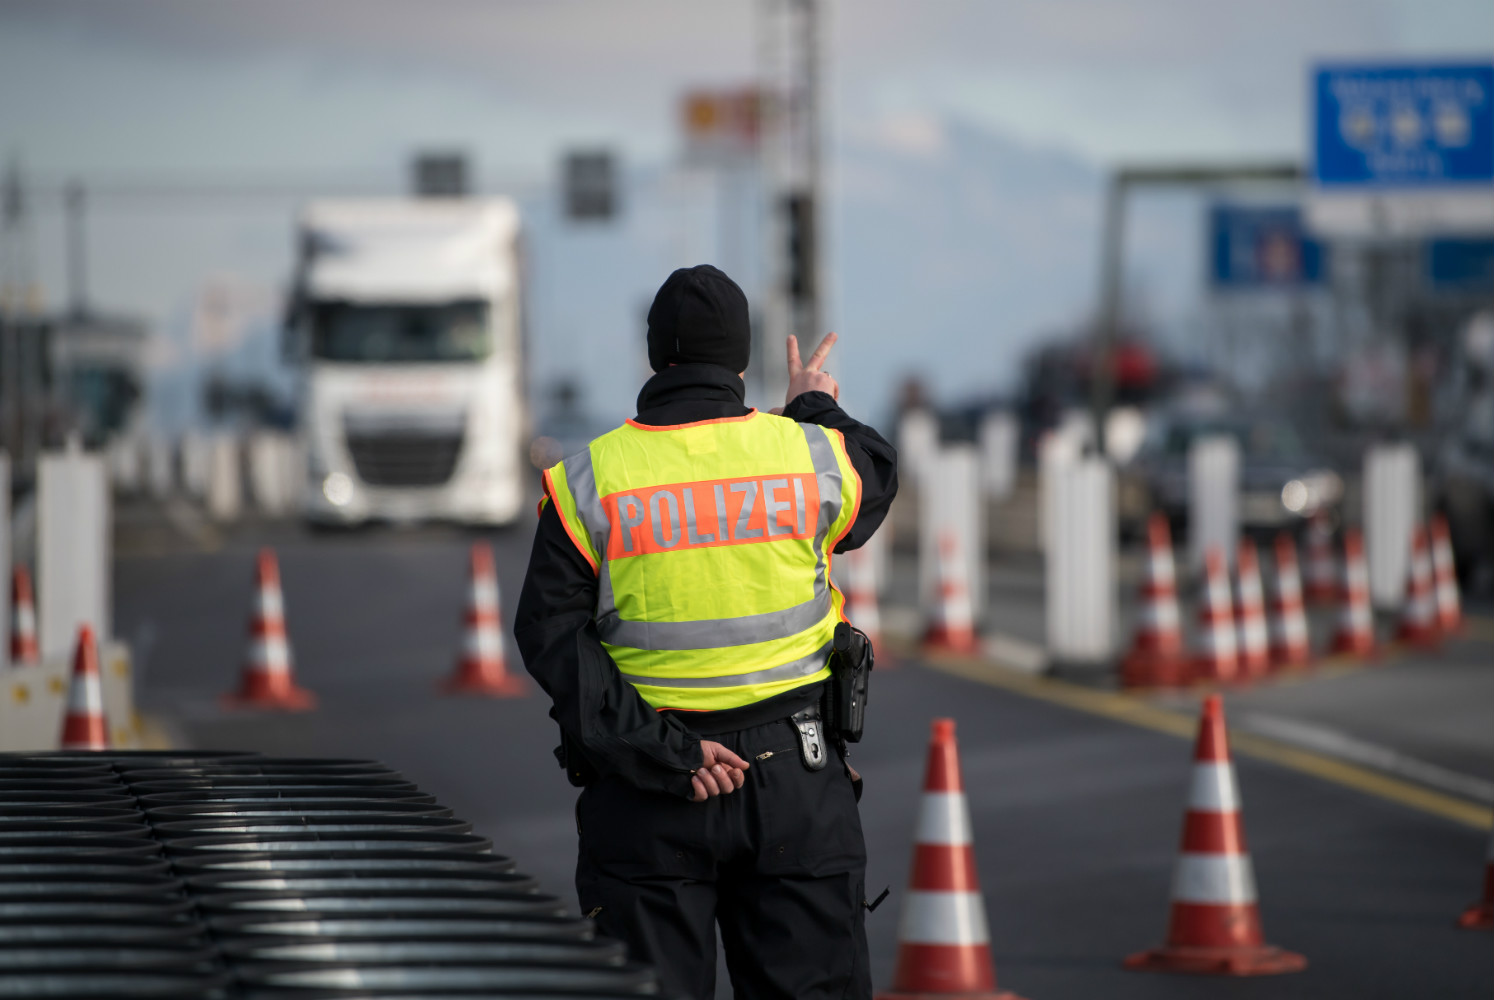 Austria extends border checks. Bavarians have a similar plan